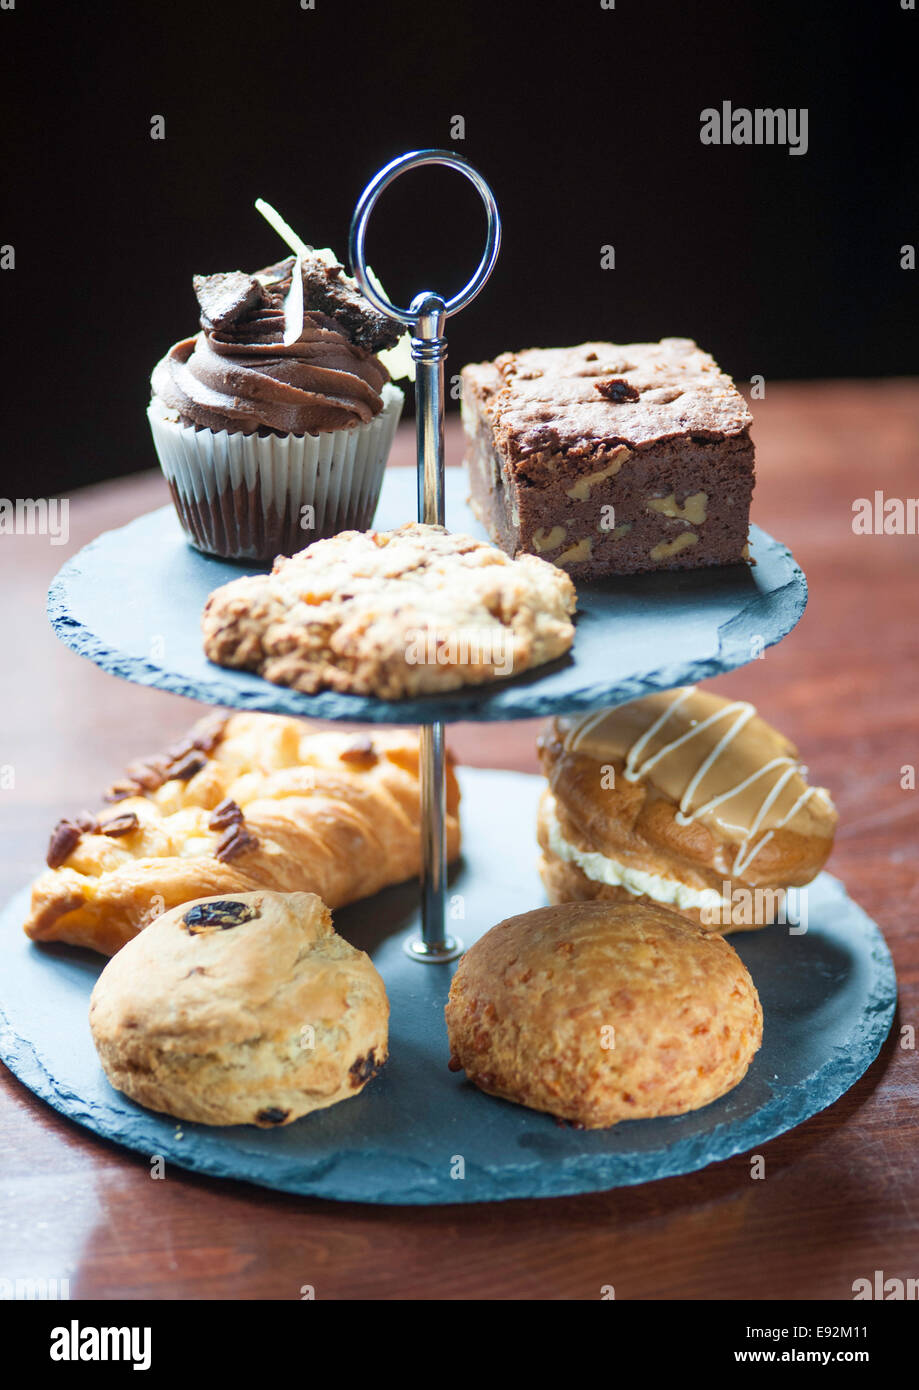 selection of cakes on cake stand - Stock Image